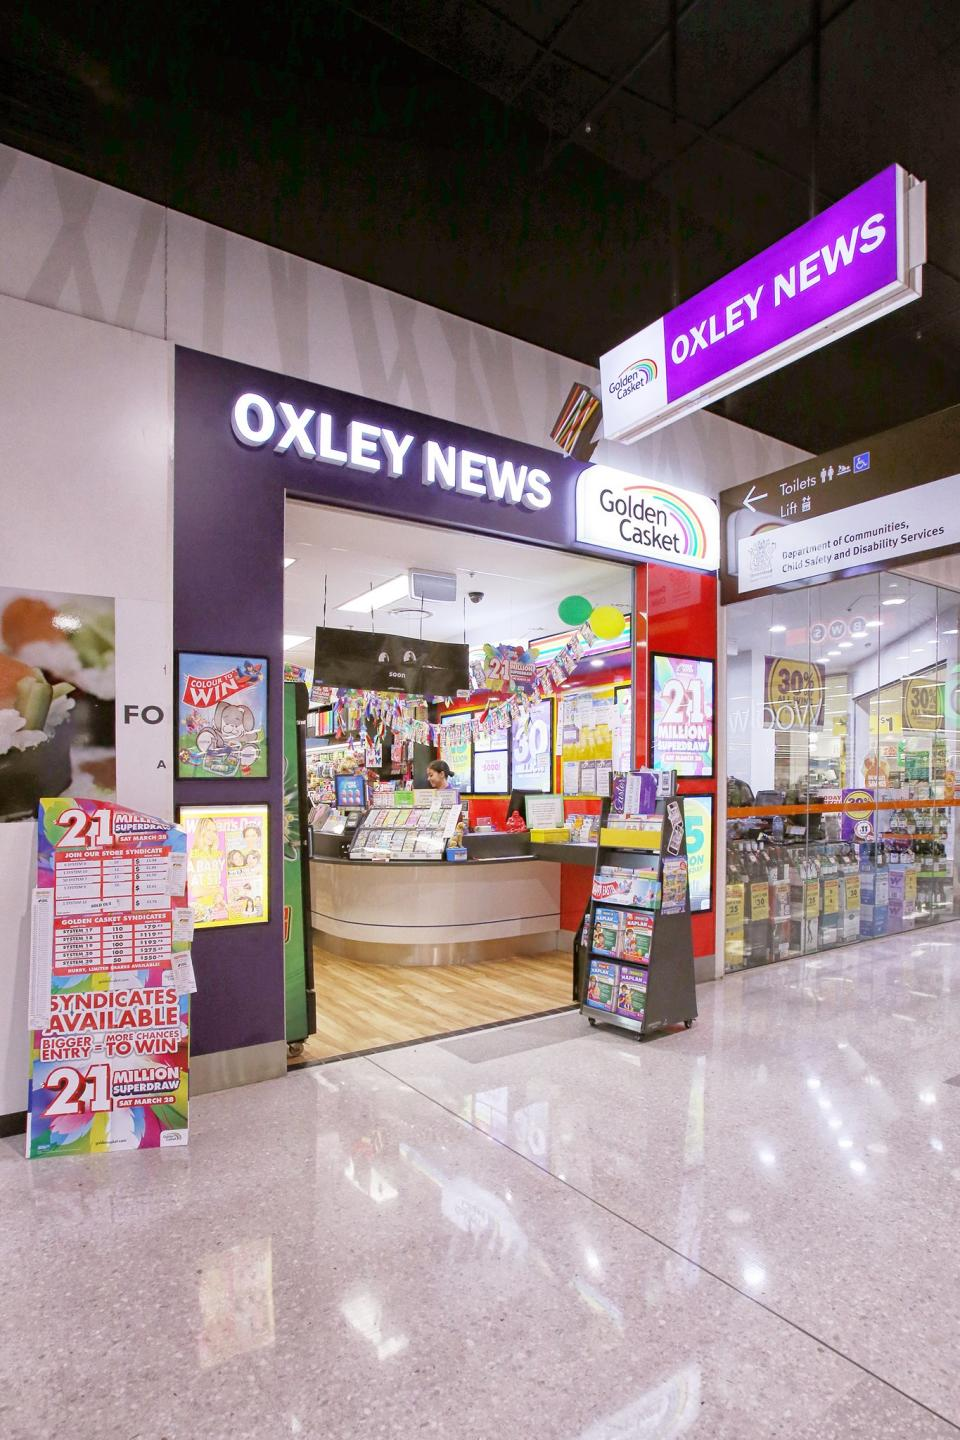 The owner of Oxley News was very excited the winning ticket was purchased at his store. Source: Oxley News/Facebook